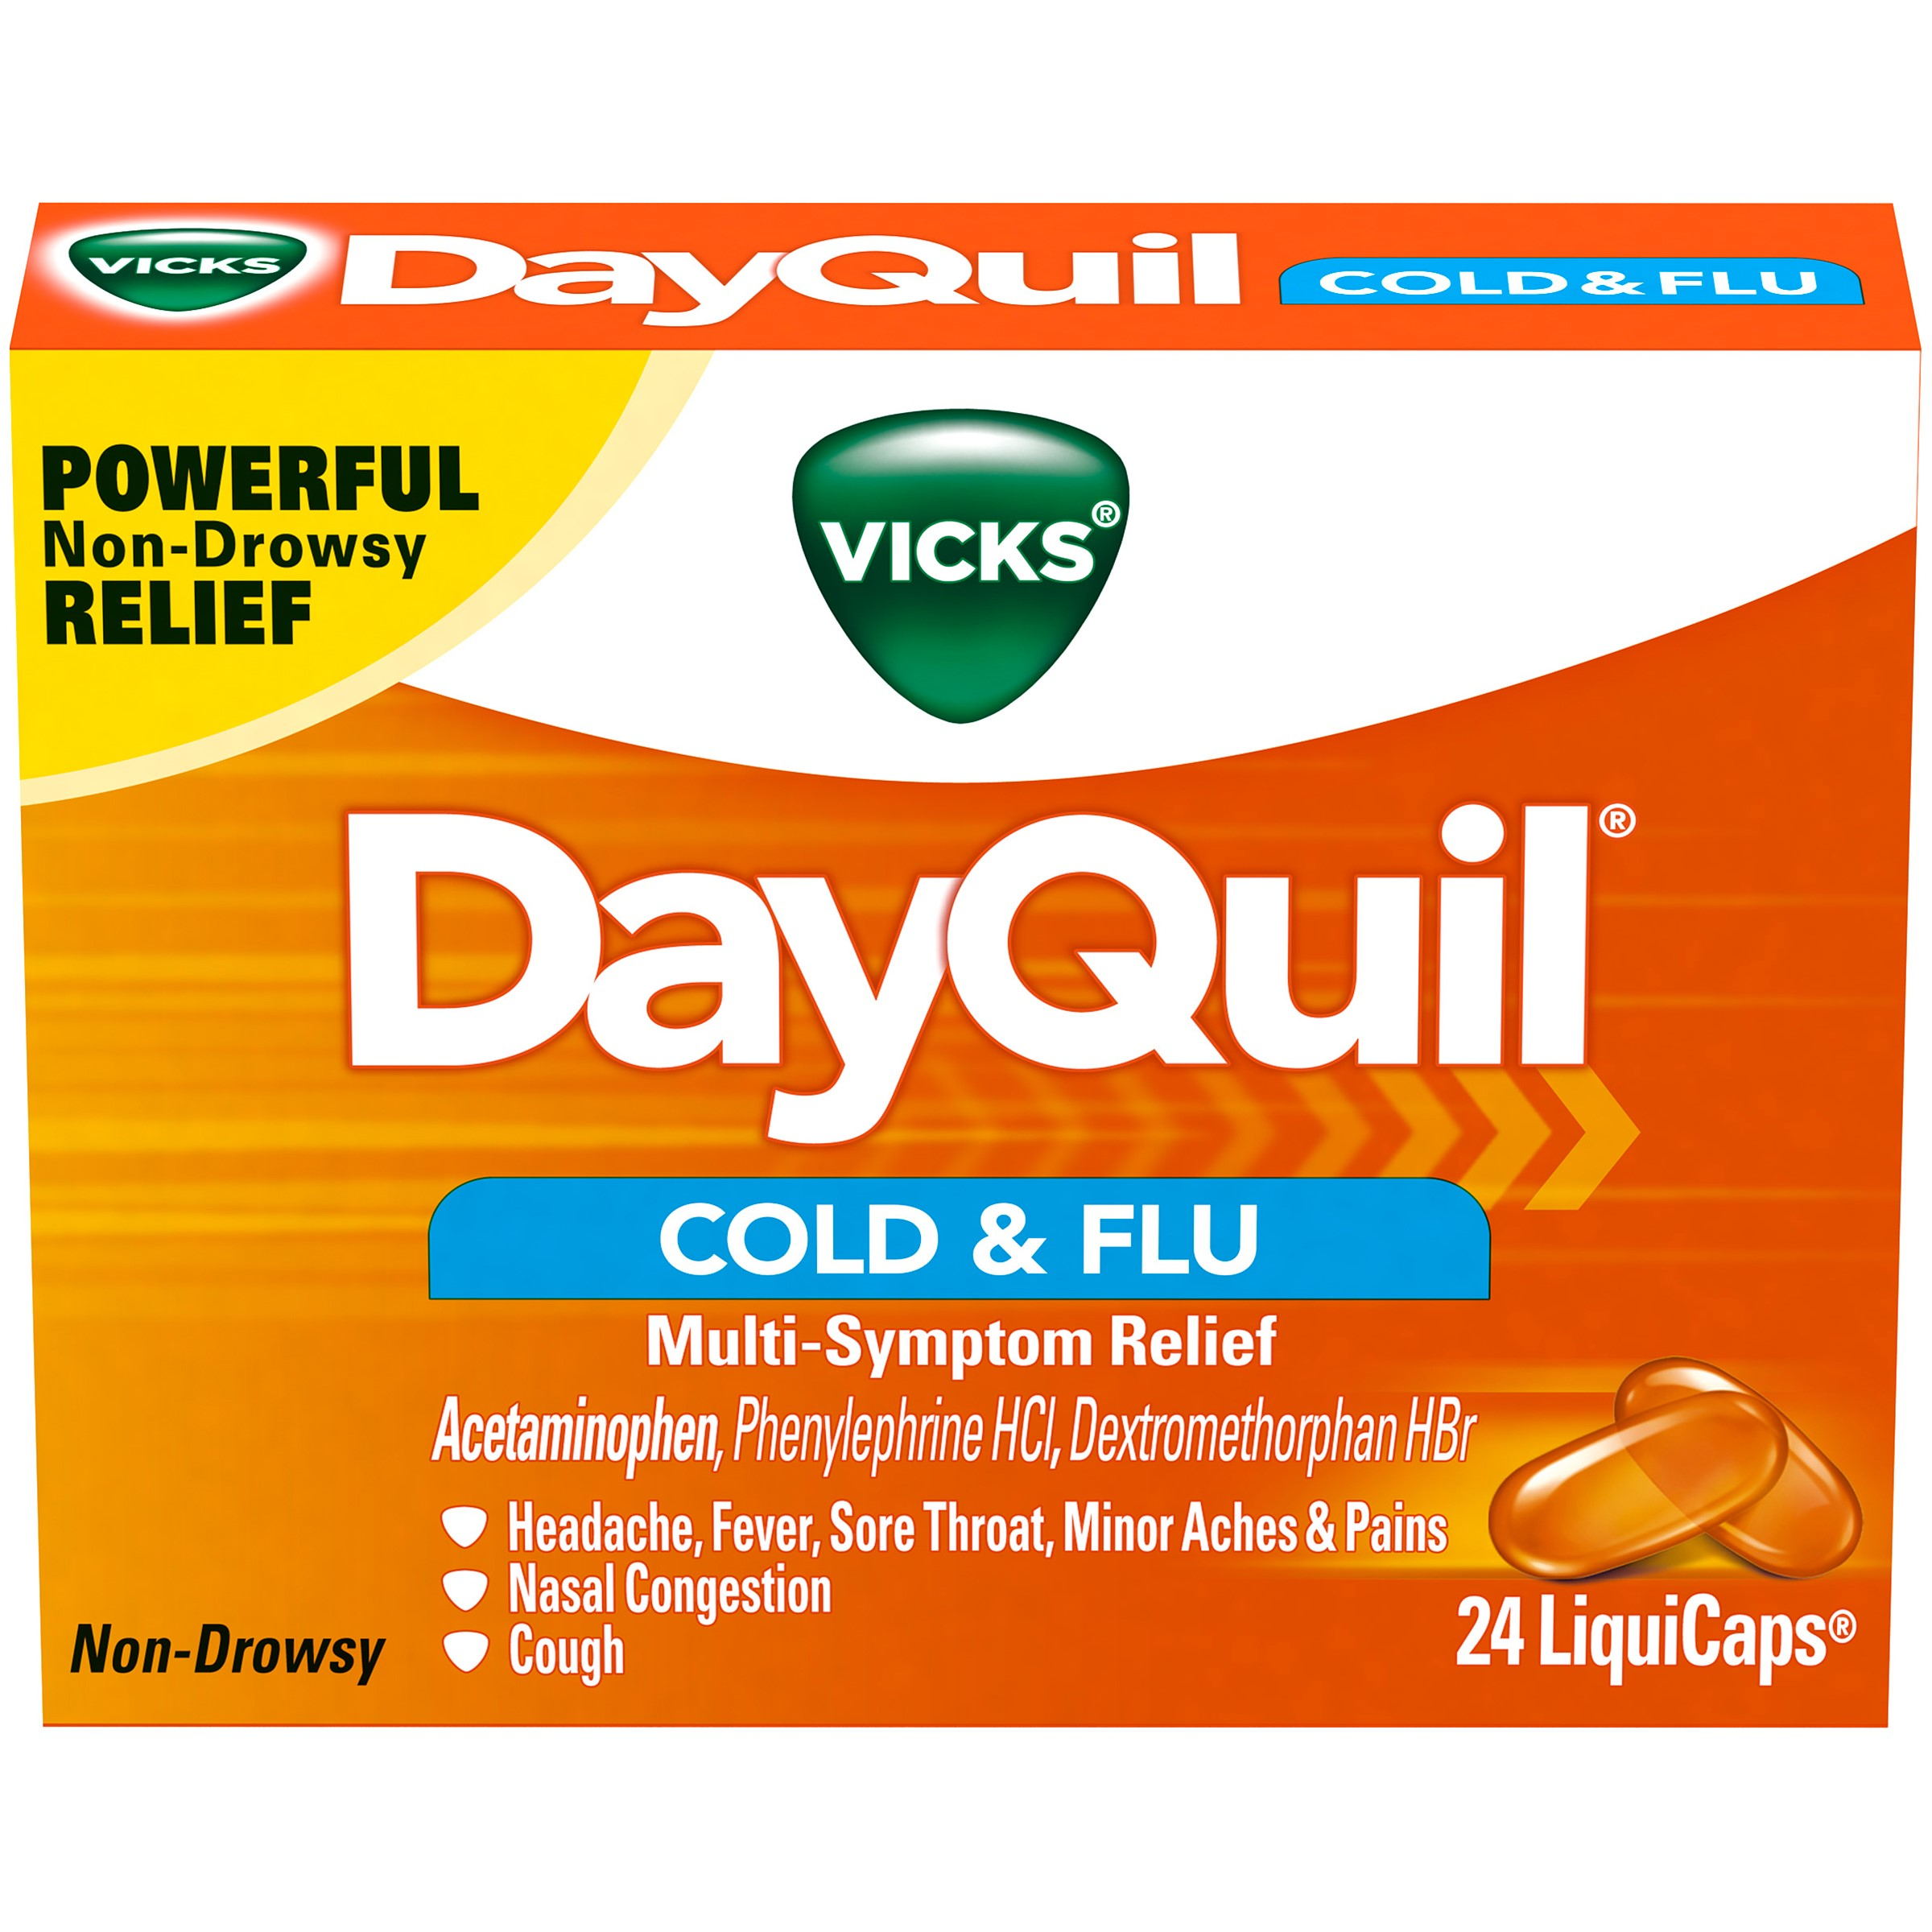 Vicks DayQuil Cold & Flu Multi-Symptom Relief, LiquiCaps, 24 Count